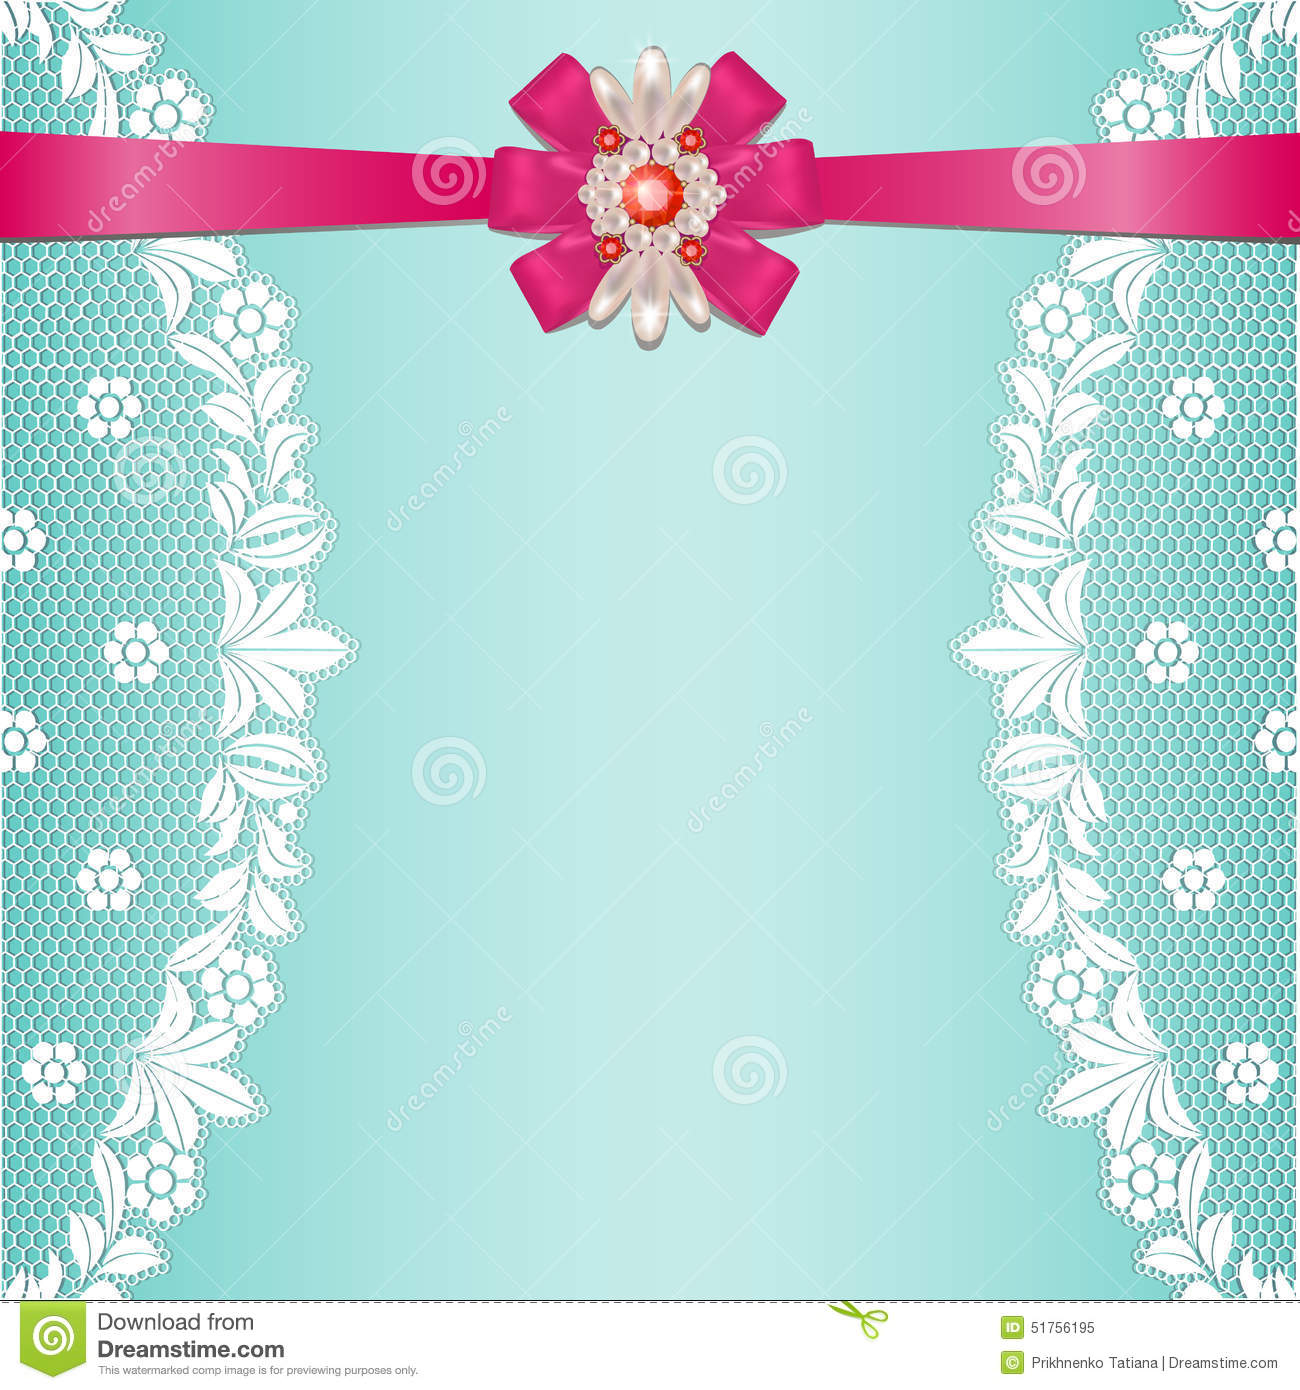 Related Keywords & Suggestions for lace border bows